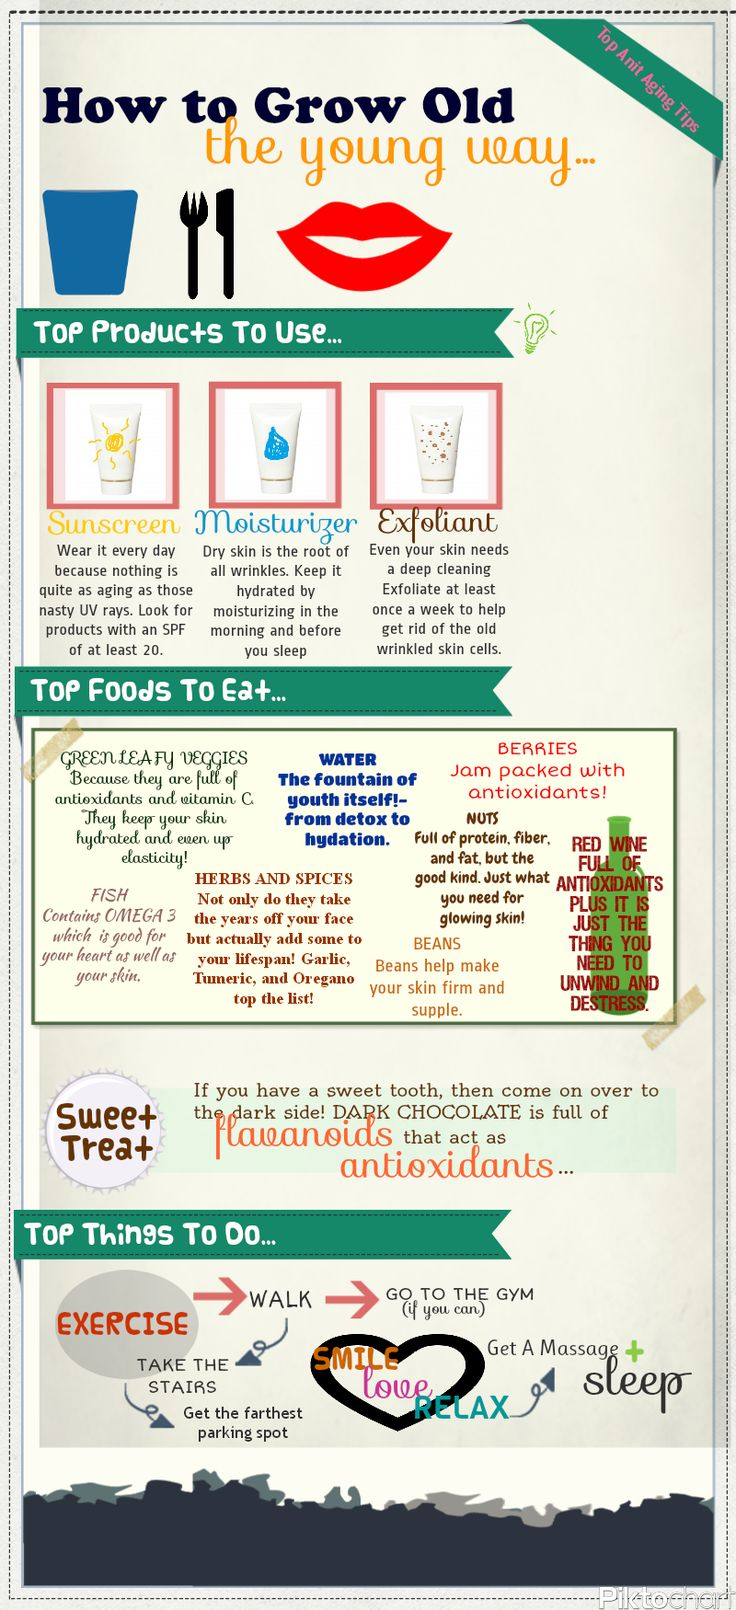 Growing Old the Young Way, Top Anti Aging Tips click image to go to my site